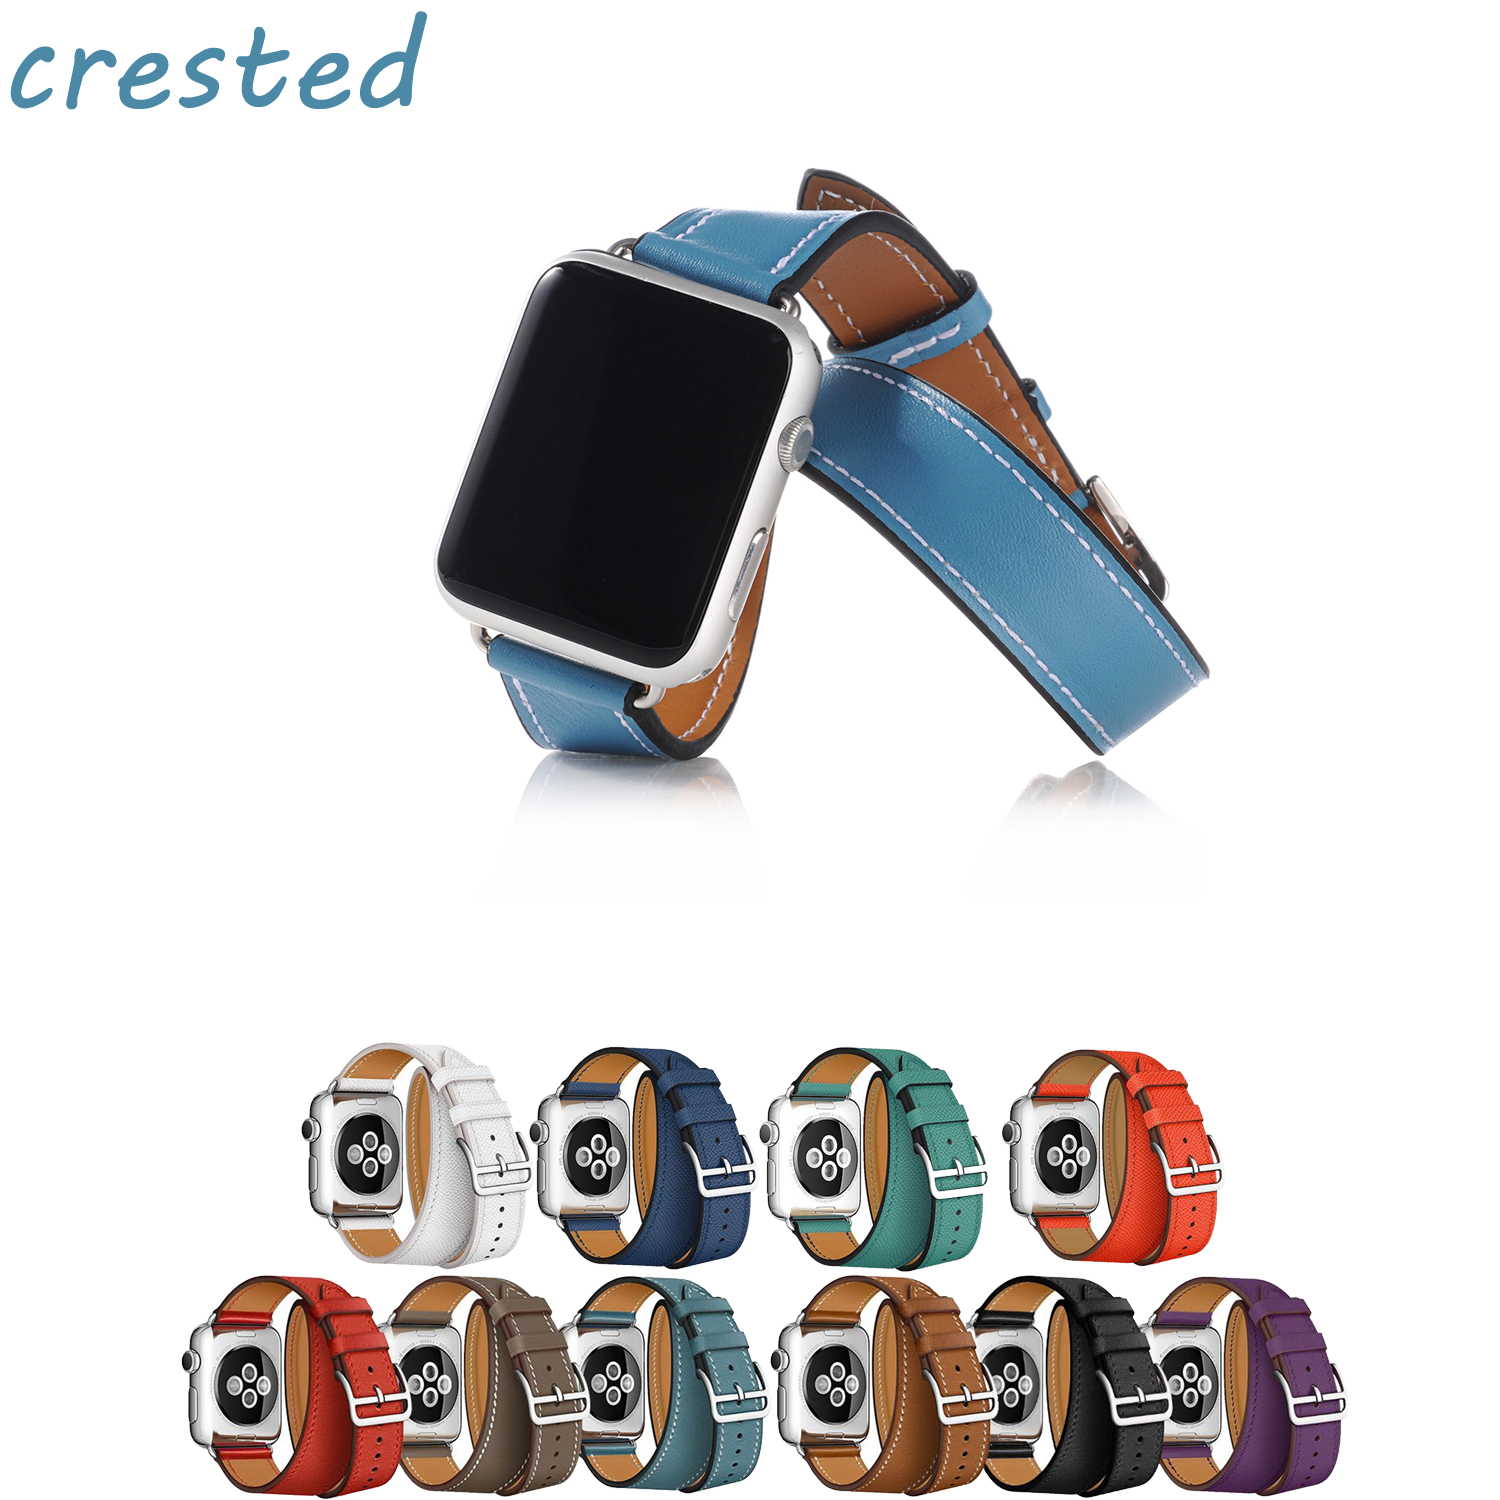 CRESTED Genuine Luxury Lit Leather strap for apple watch band 42mm/38 bracelet band for iwatch 1/2/3 Double tour belt new arrival long genuine apple watch band leather watchband strap double tour bracelet for apple watch 38 42mm